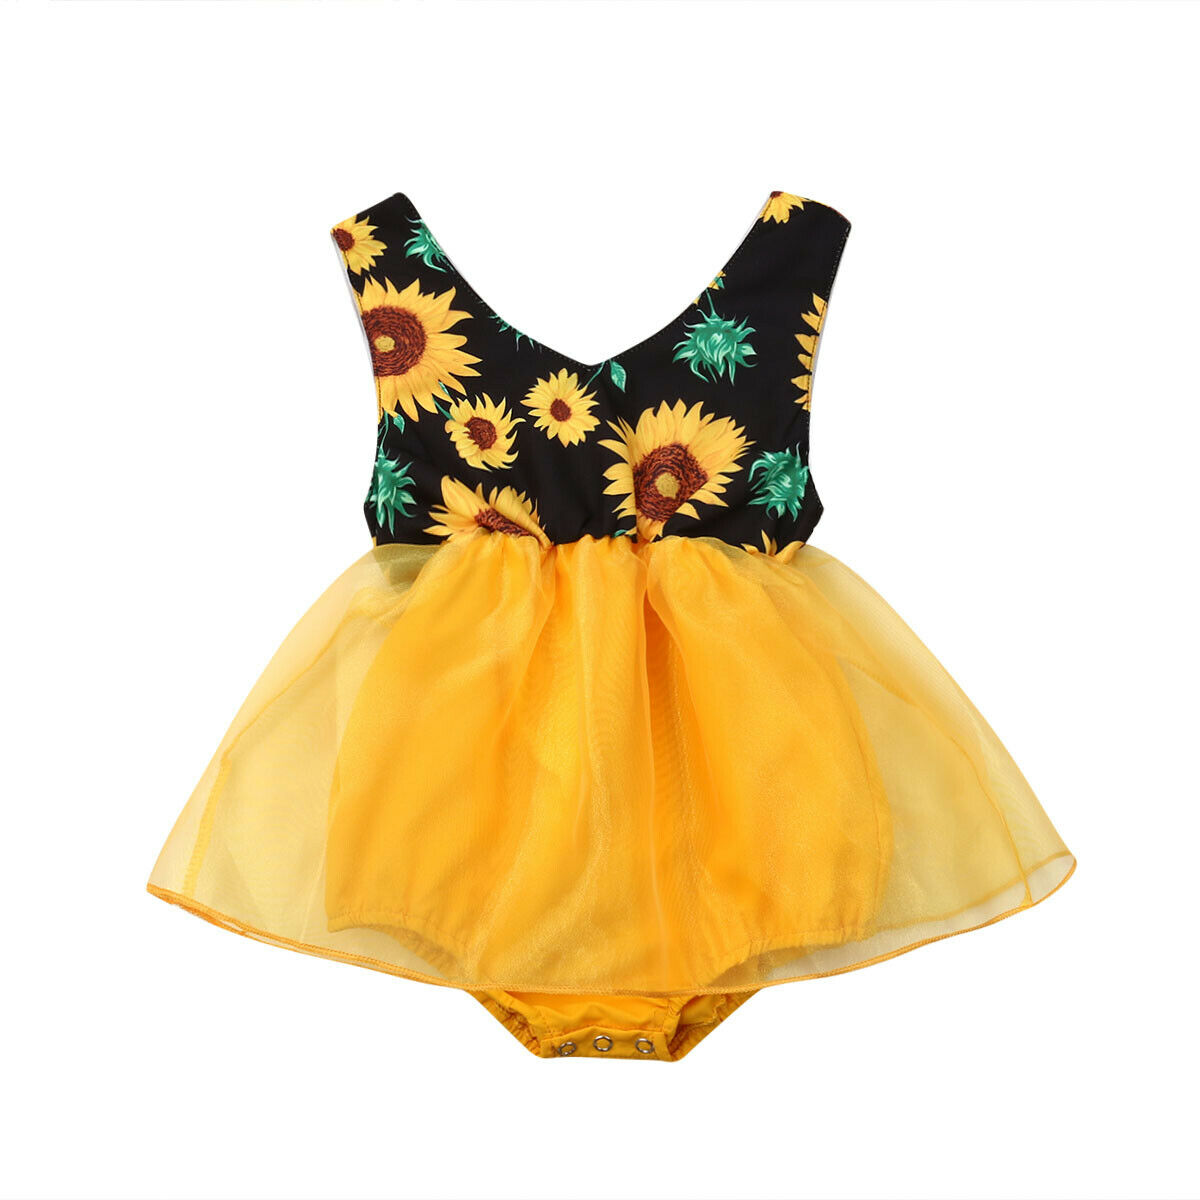 Flower Infant Baby Girl Clothing Newborn Baby   Rompers   Sunflower Tutu Tulle Jumpsuit Playsuit Summer Baby Girls Costuems